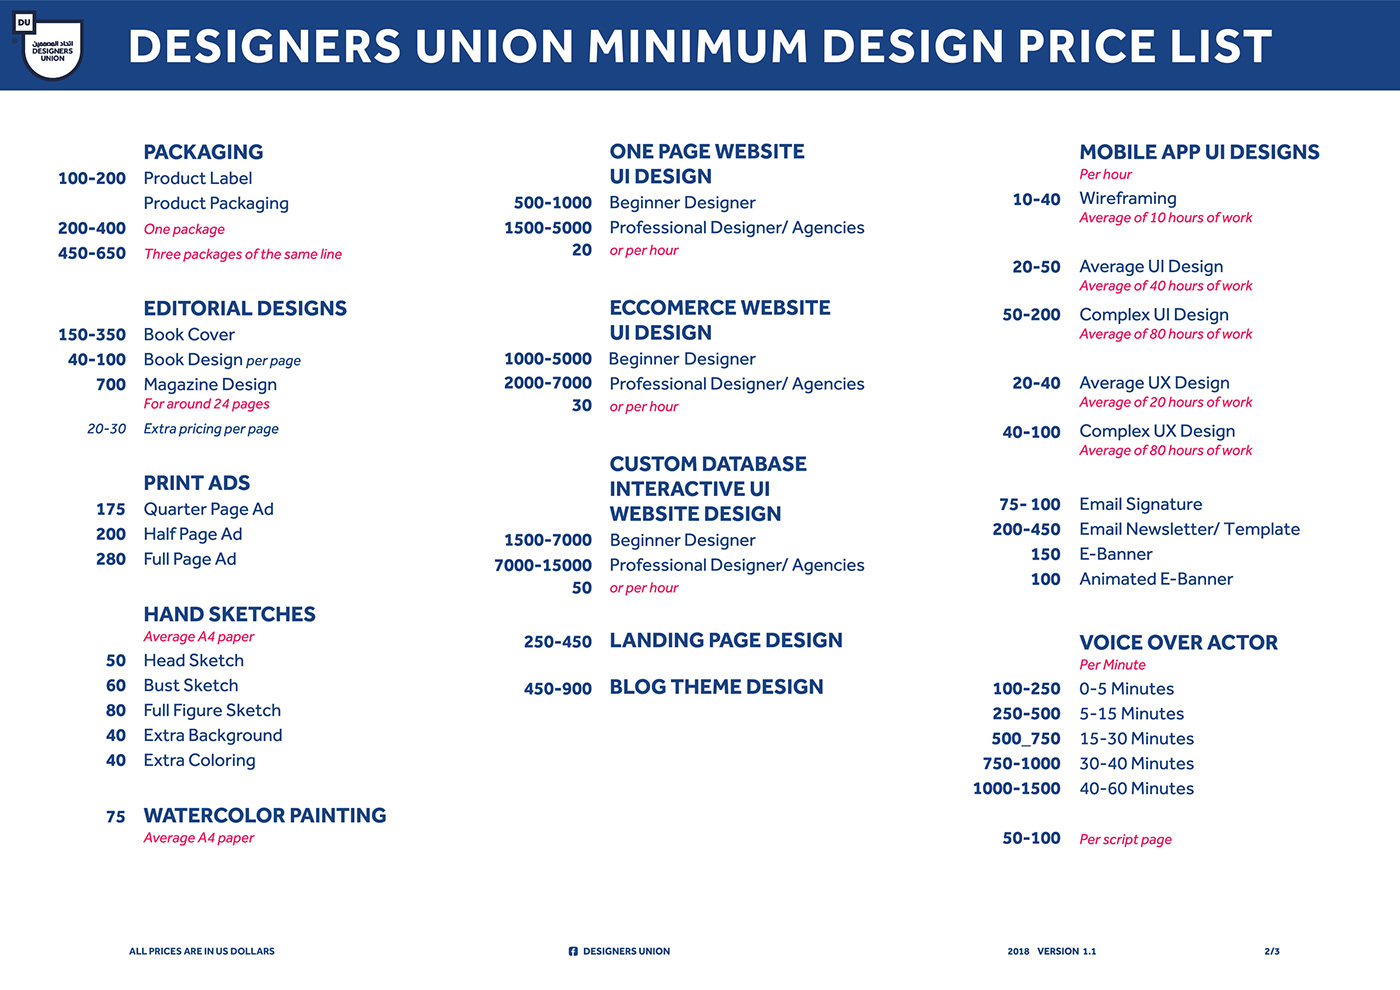 Official Du Design Minimum Price List On Behance